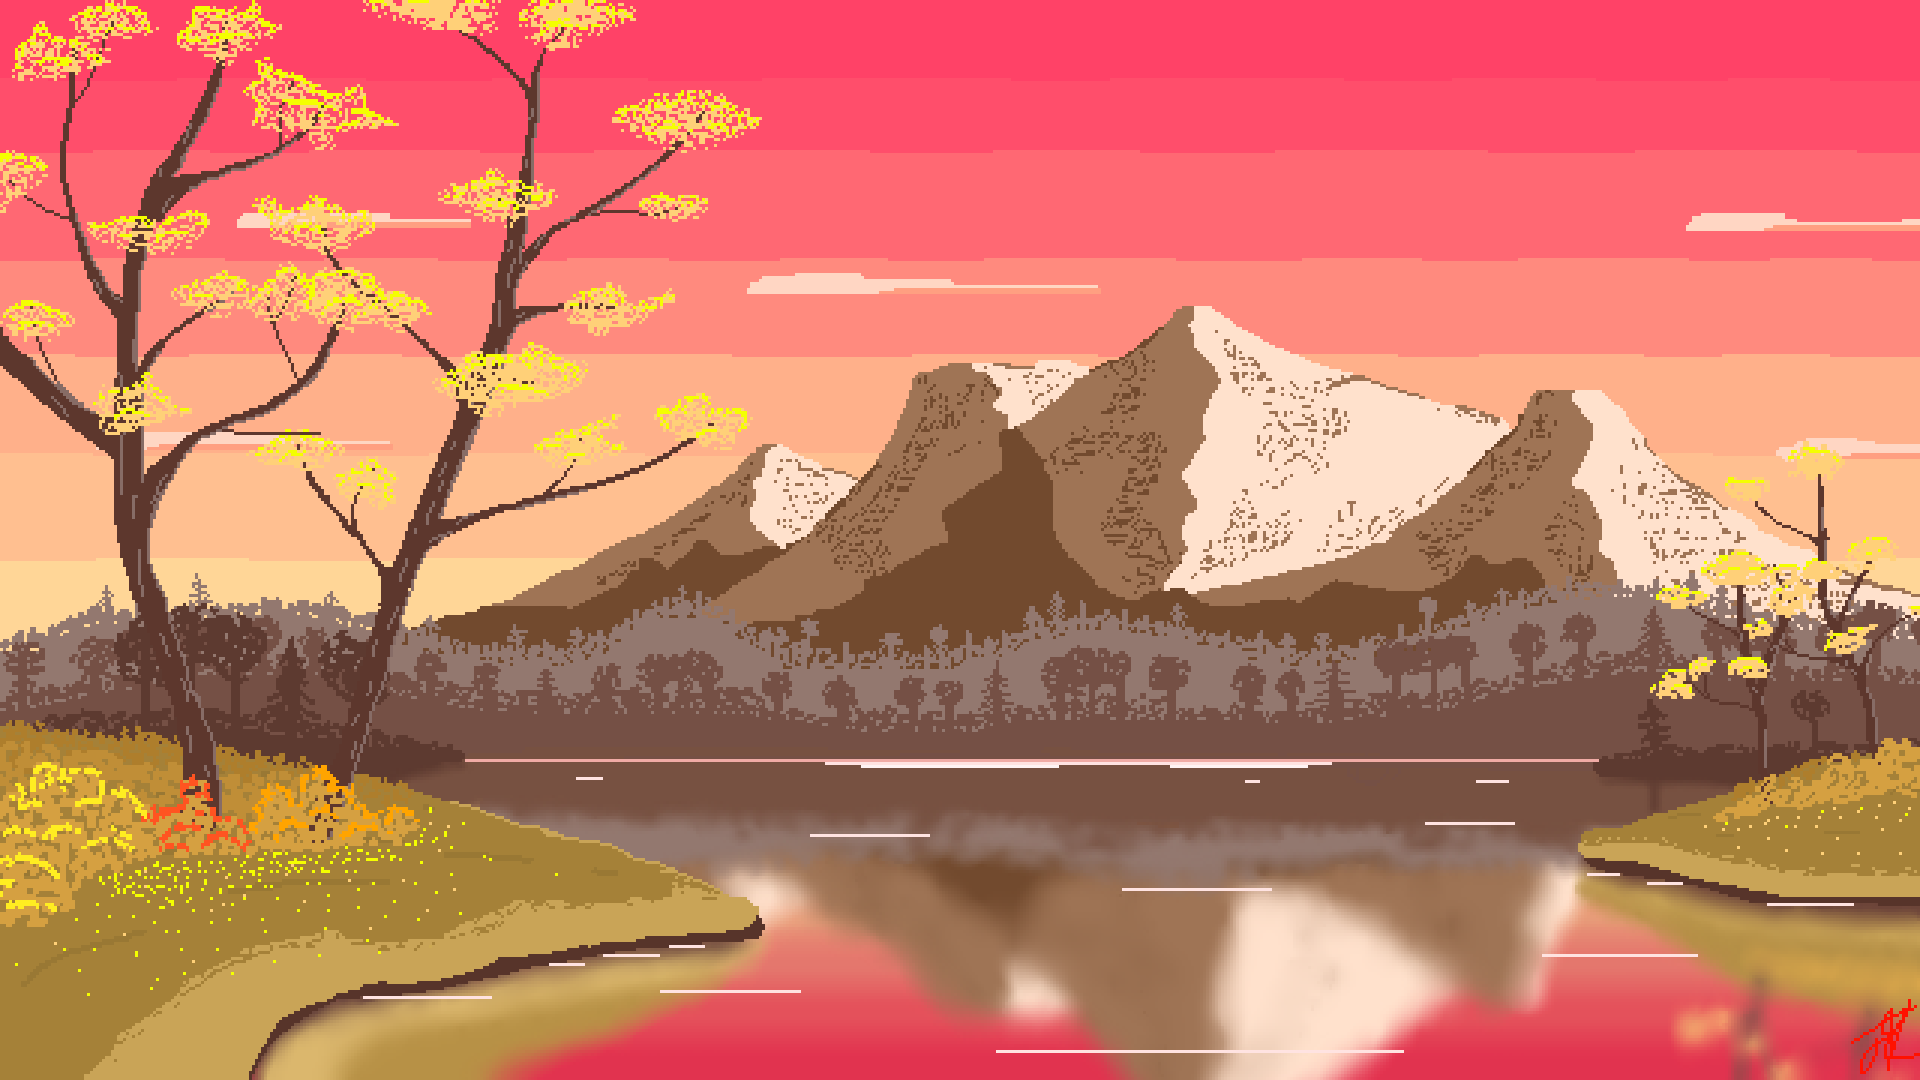 Fall-Mountains-Pixel-Art-1920x1080-Need-iPhone-S-Plus-Background-for-IPhoneSPlus-wallpaper-wp3405379